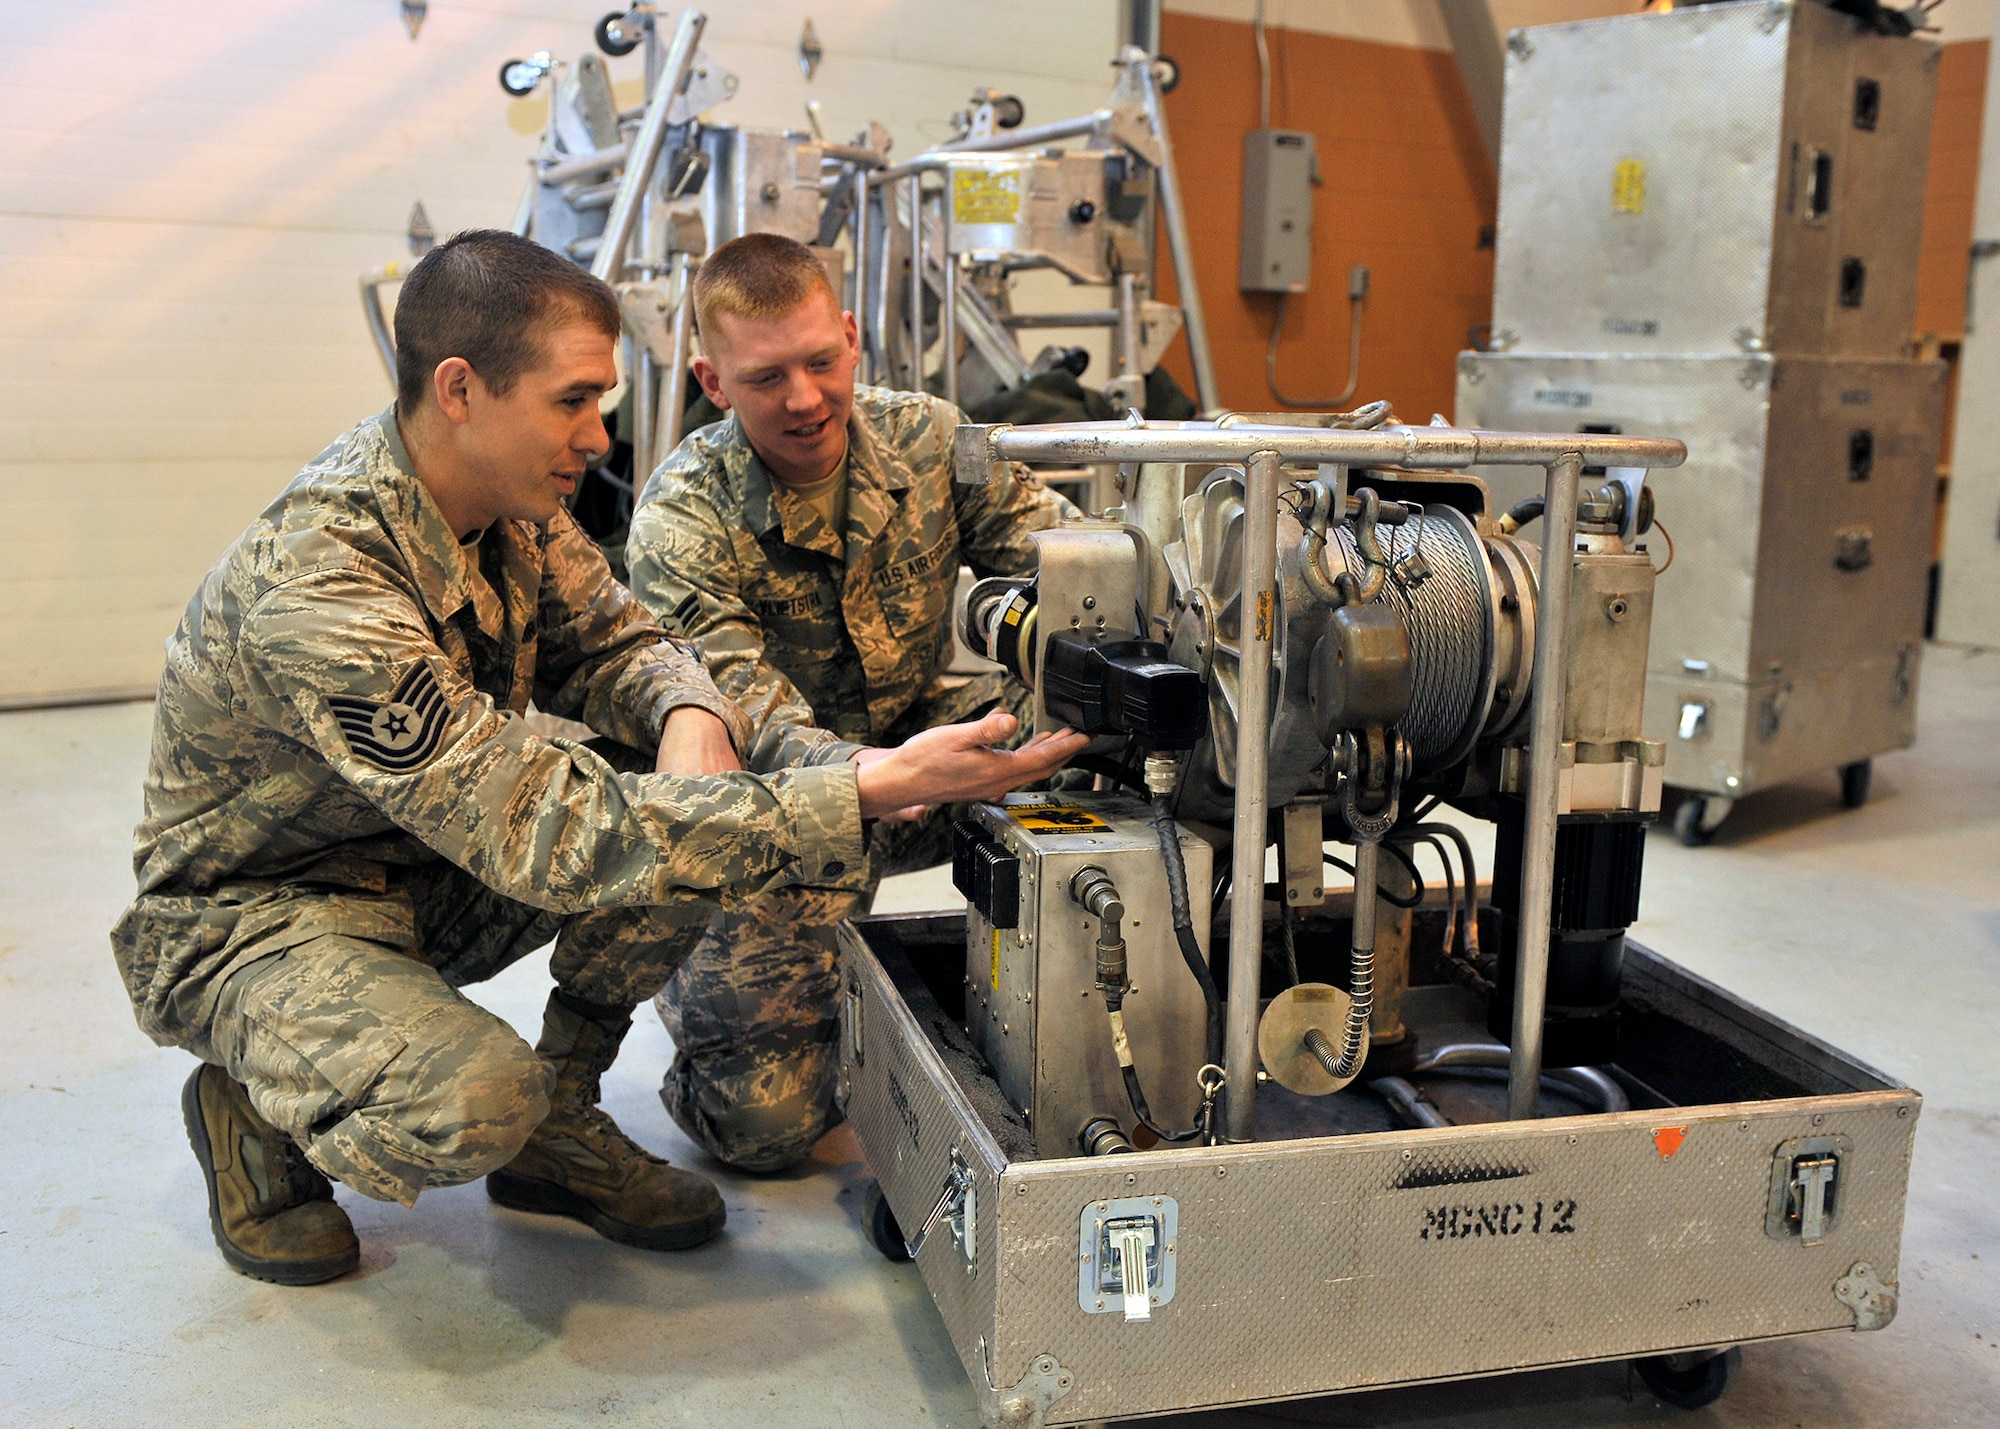 Tech. Sgt. Robert Richards and Airman 1st Class Benjamin Vlietstra  look over a guided missile maintenance platform motor Jan. 21, 2015, at Malmstrom Air Force Base, Mont. All 17 of the 341st Missile Wing's GMMPs -- also known as work cages -- were available for service Jan. 14, ensuring that missile maintenance in Minuteman III launch facilities stays on schedule. Richards is a mechanical and pneudraulics section team chief and team trainer, and Vlietstra is a power, refrigeration and electrical laboratory technician with the 341st Maintenance Operations Squadron. (U.S. Air Force photo/John Turner)